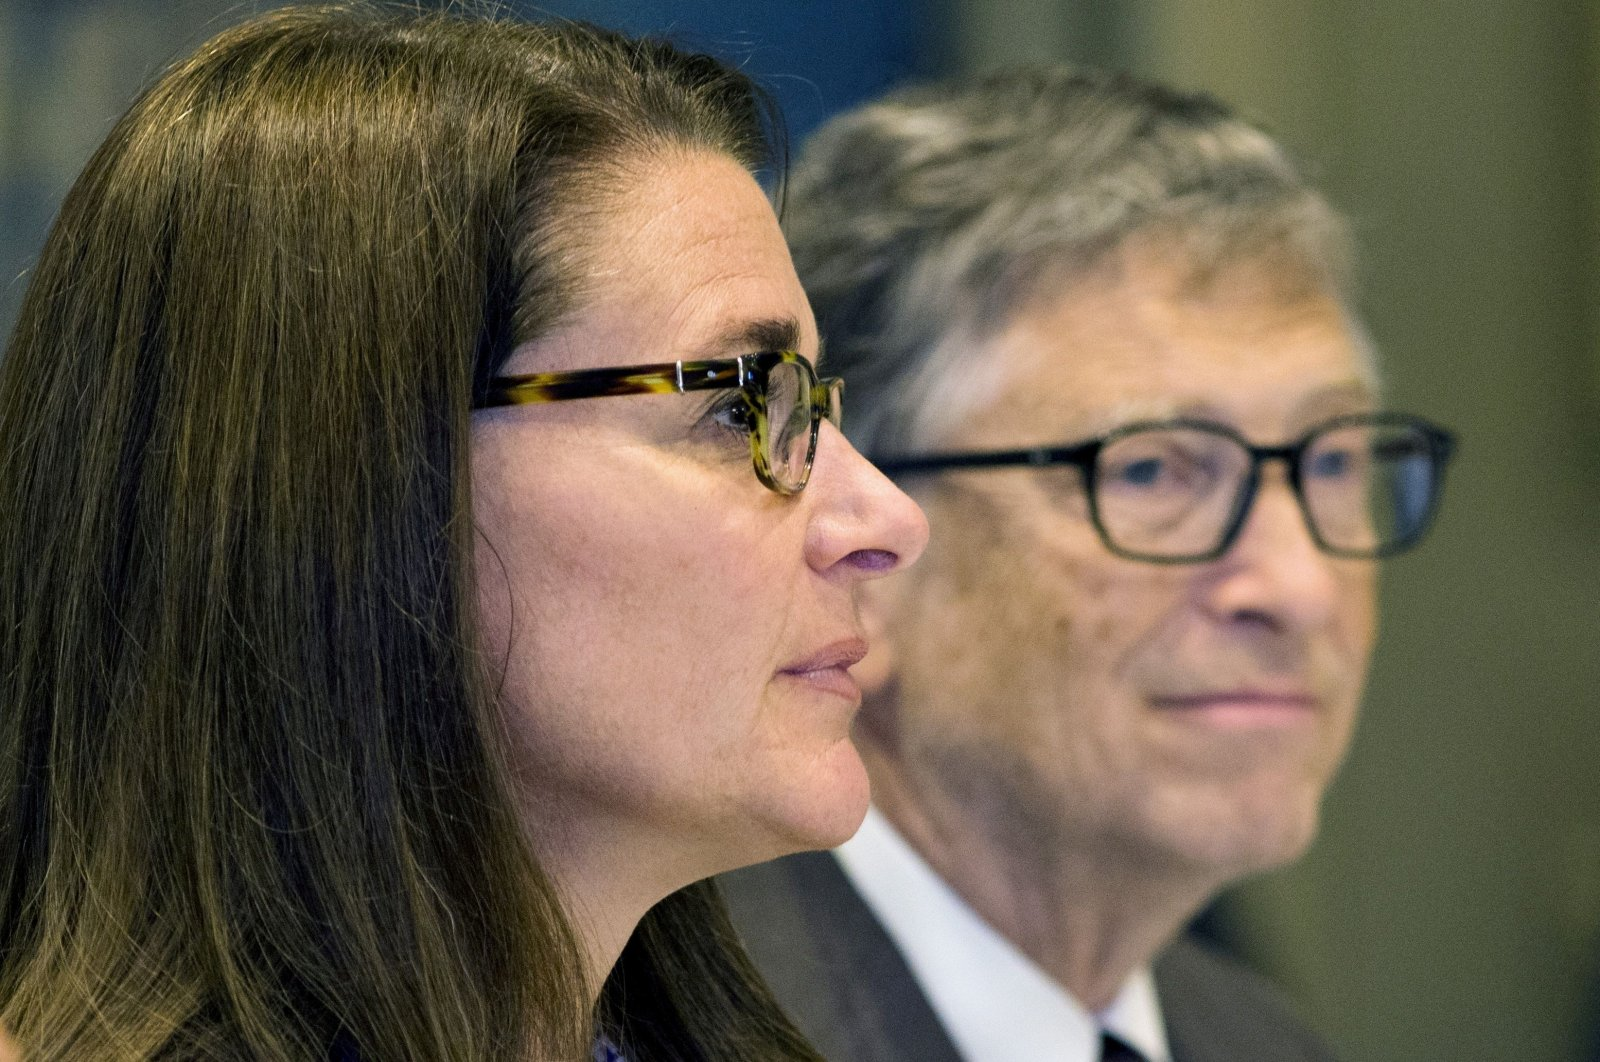 """American business magnate Bill Gates and wife Melinda Gates attend a news conference by United Nations's movement """"Every Woman, Every Child"""" in Manhattan, New York, U.S., Sept. 24, 2015. (Reuters Photo)"""